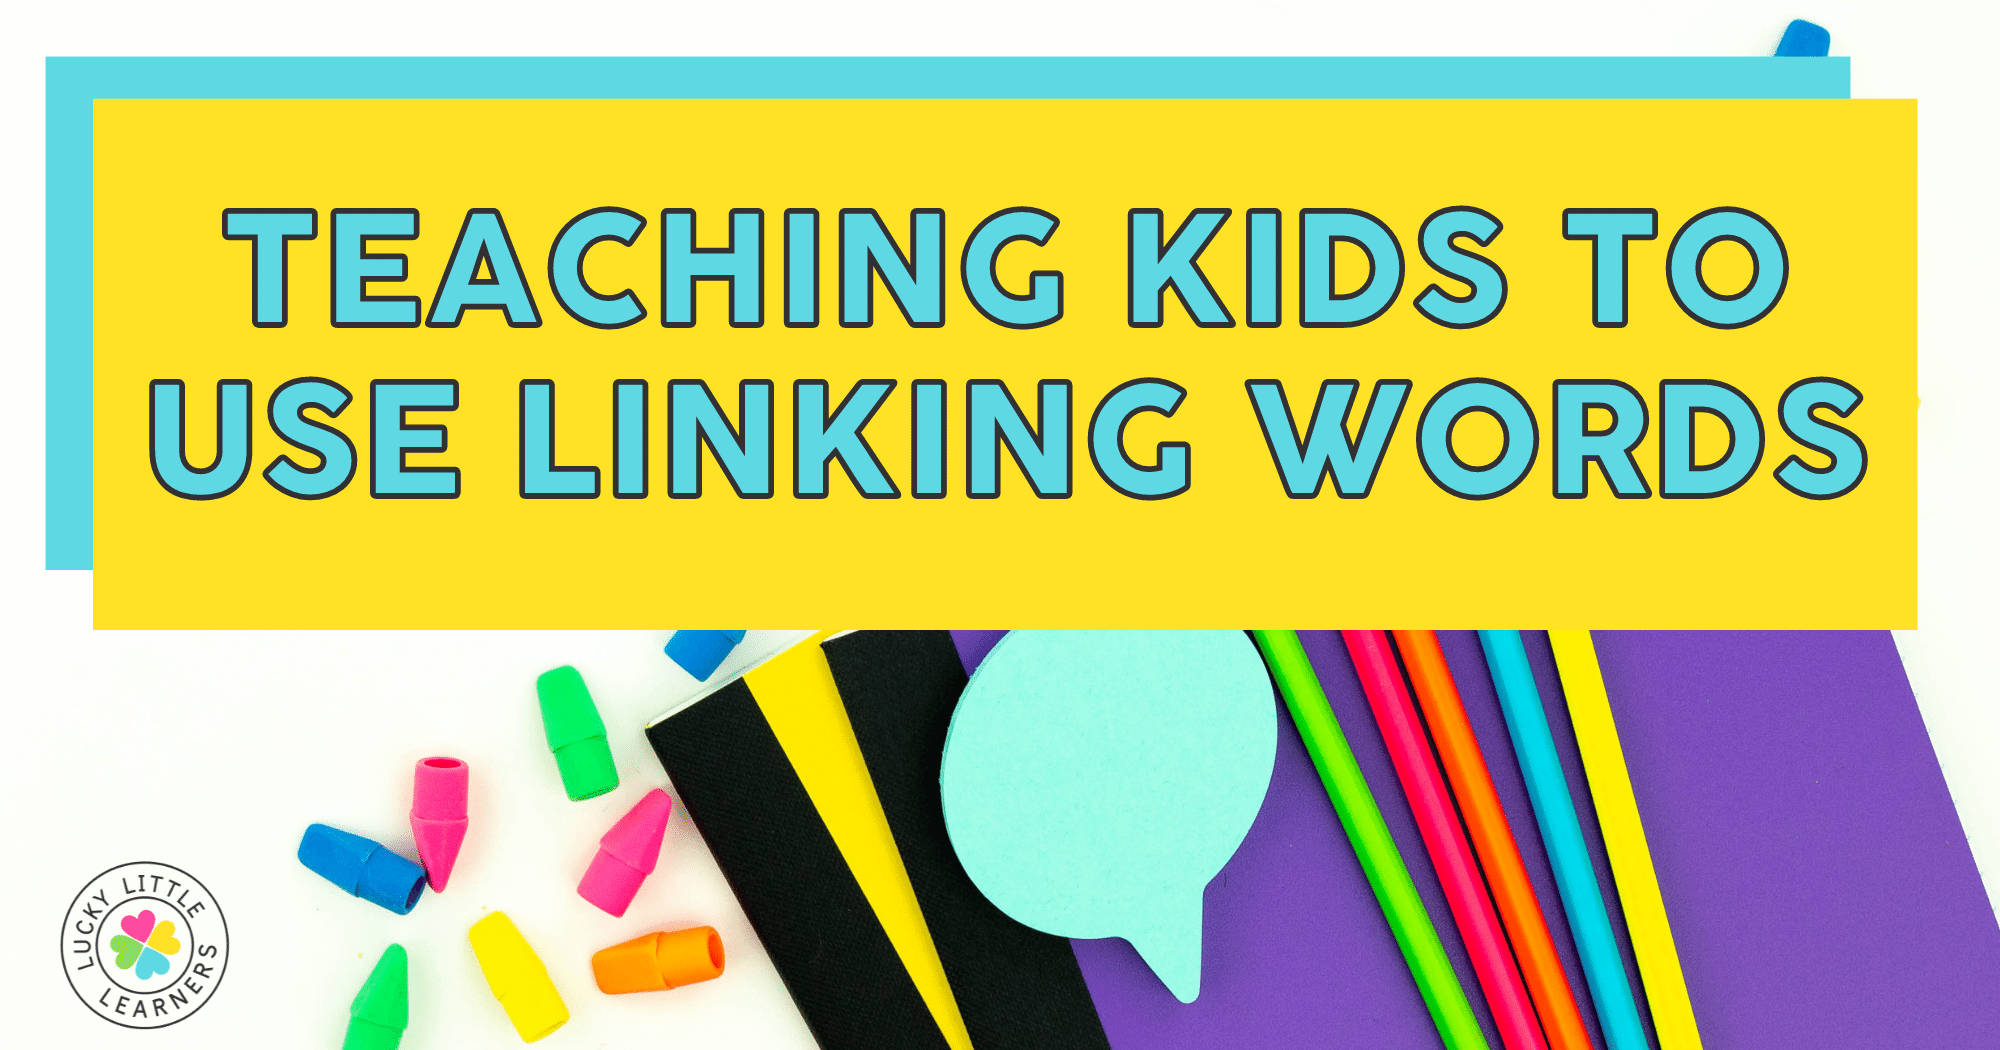 ideas for teaching kids to use linking words in writing